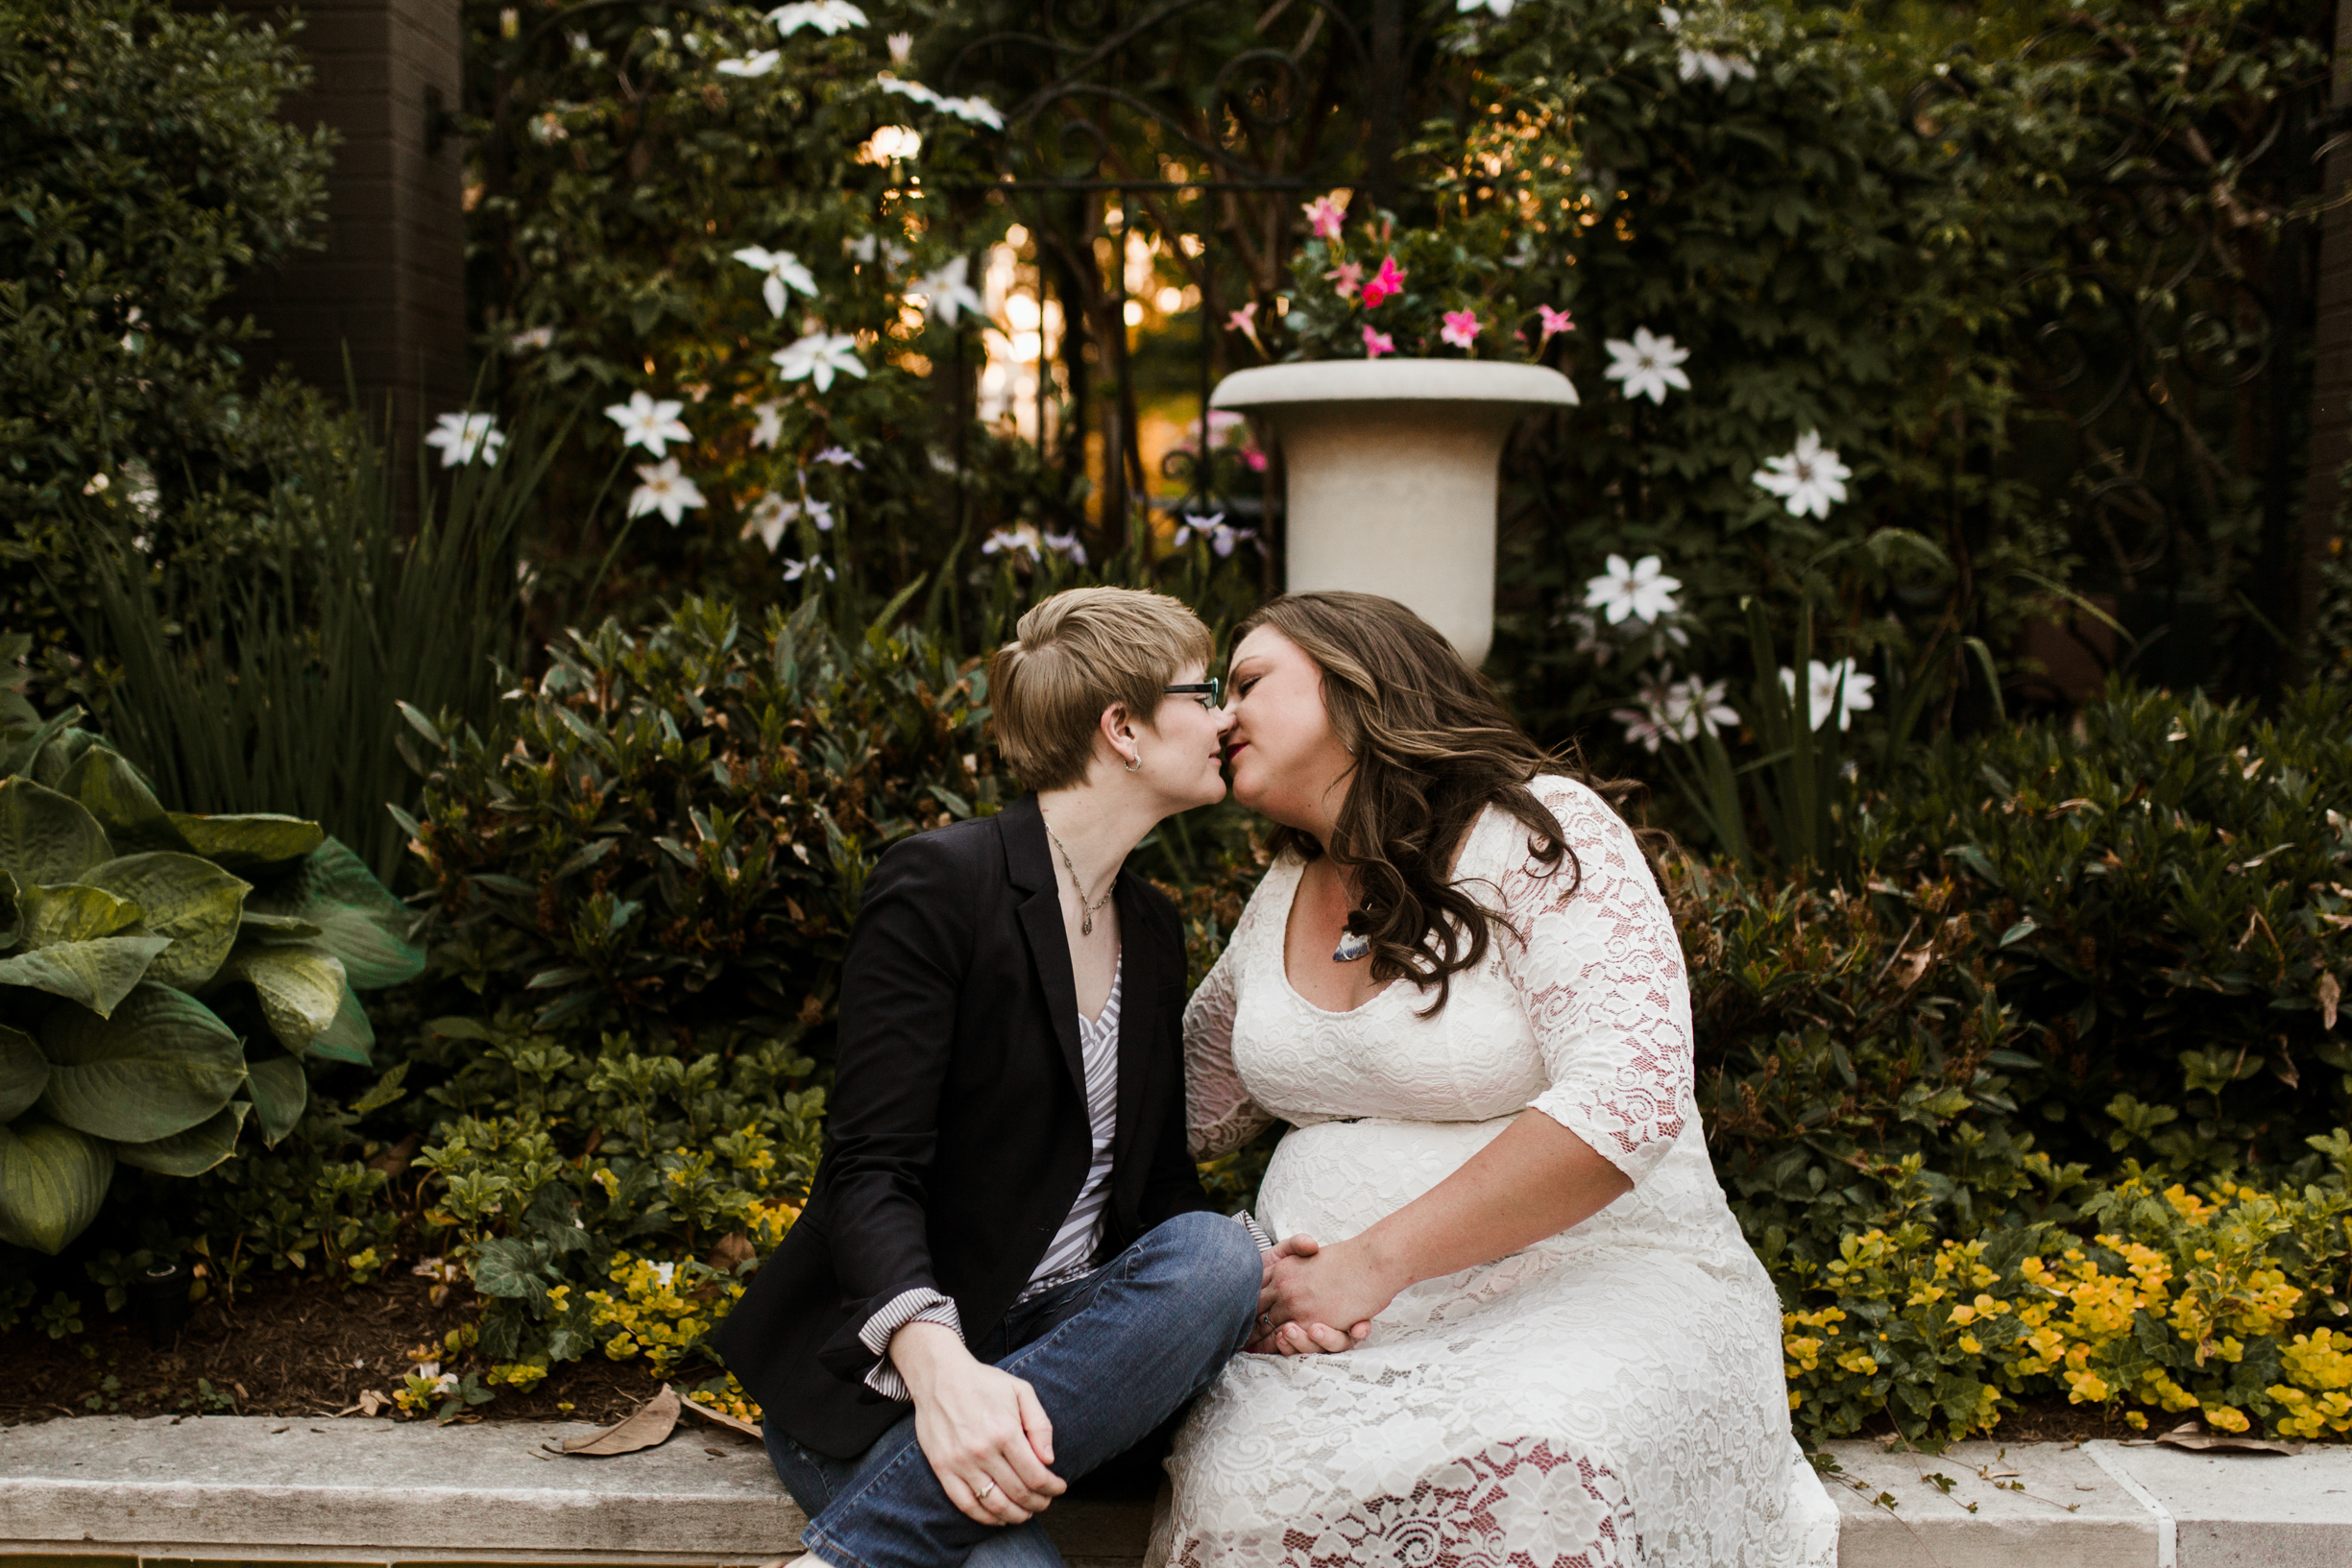 Crystal Ludwick Photo Louisville, Kentucky Wedding Photographer (12 of 24).jpg